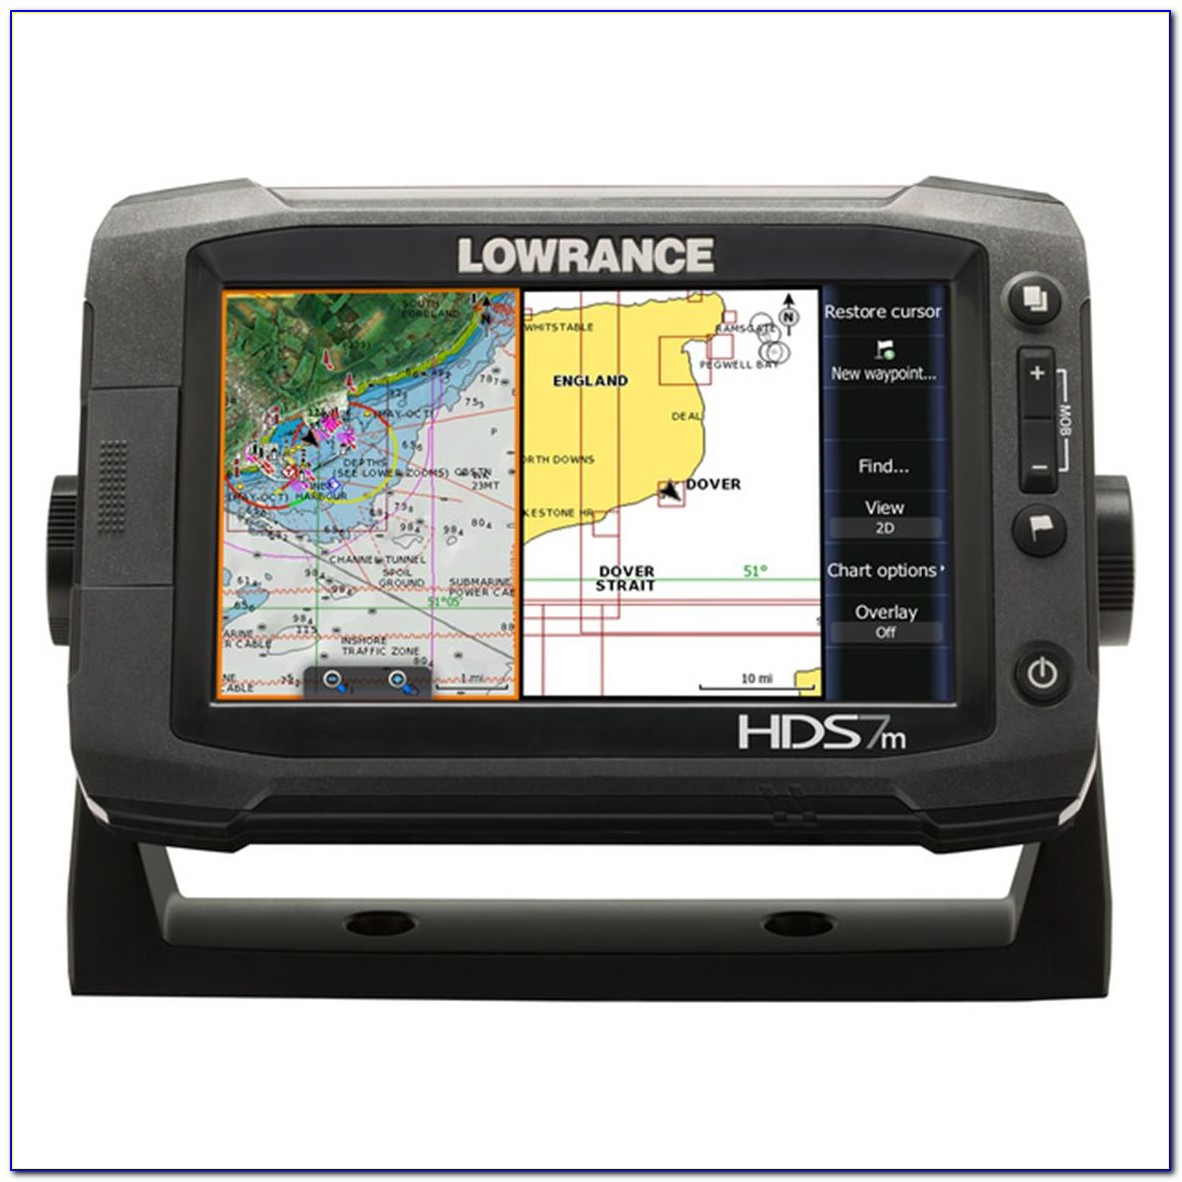 Lowrance Gps Maps Free Download